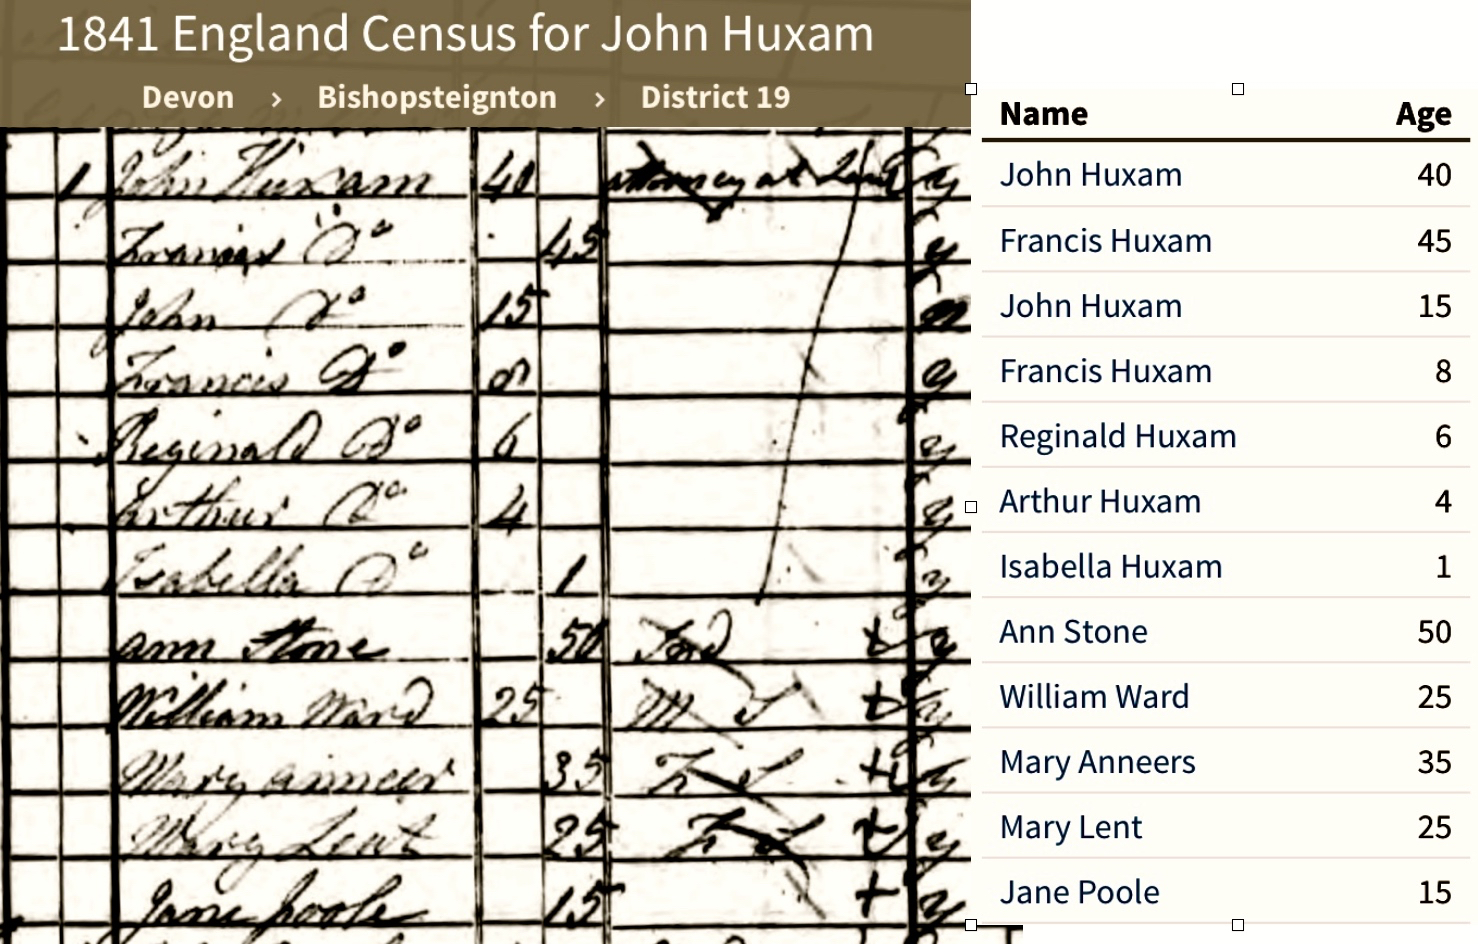 Delamore 1841 Census